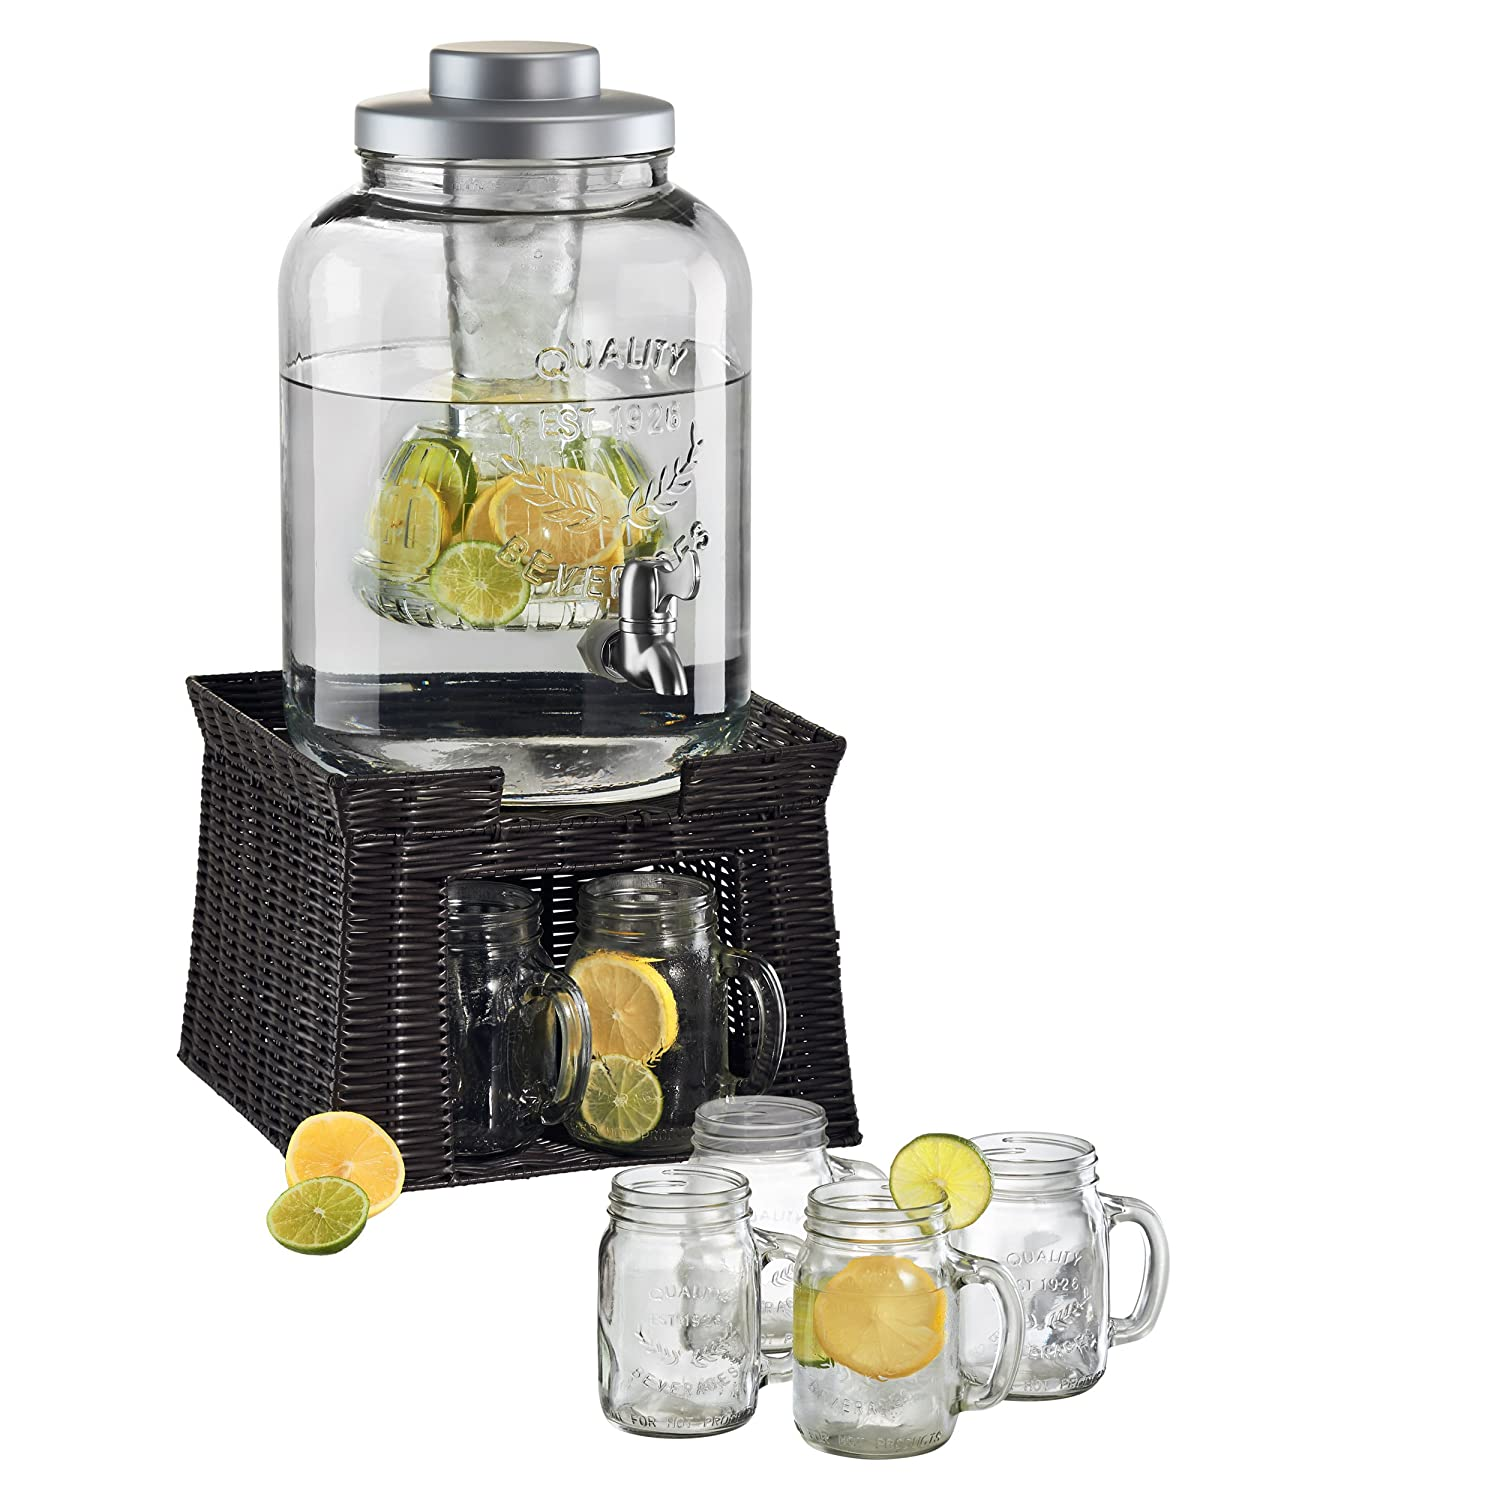 Amazoncom Oasis Beverage Jar with Chiller and Infuser 6 Mason